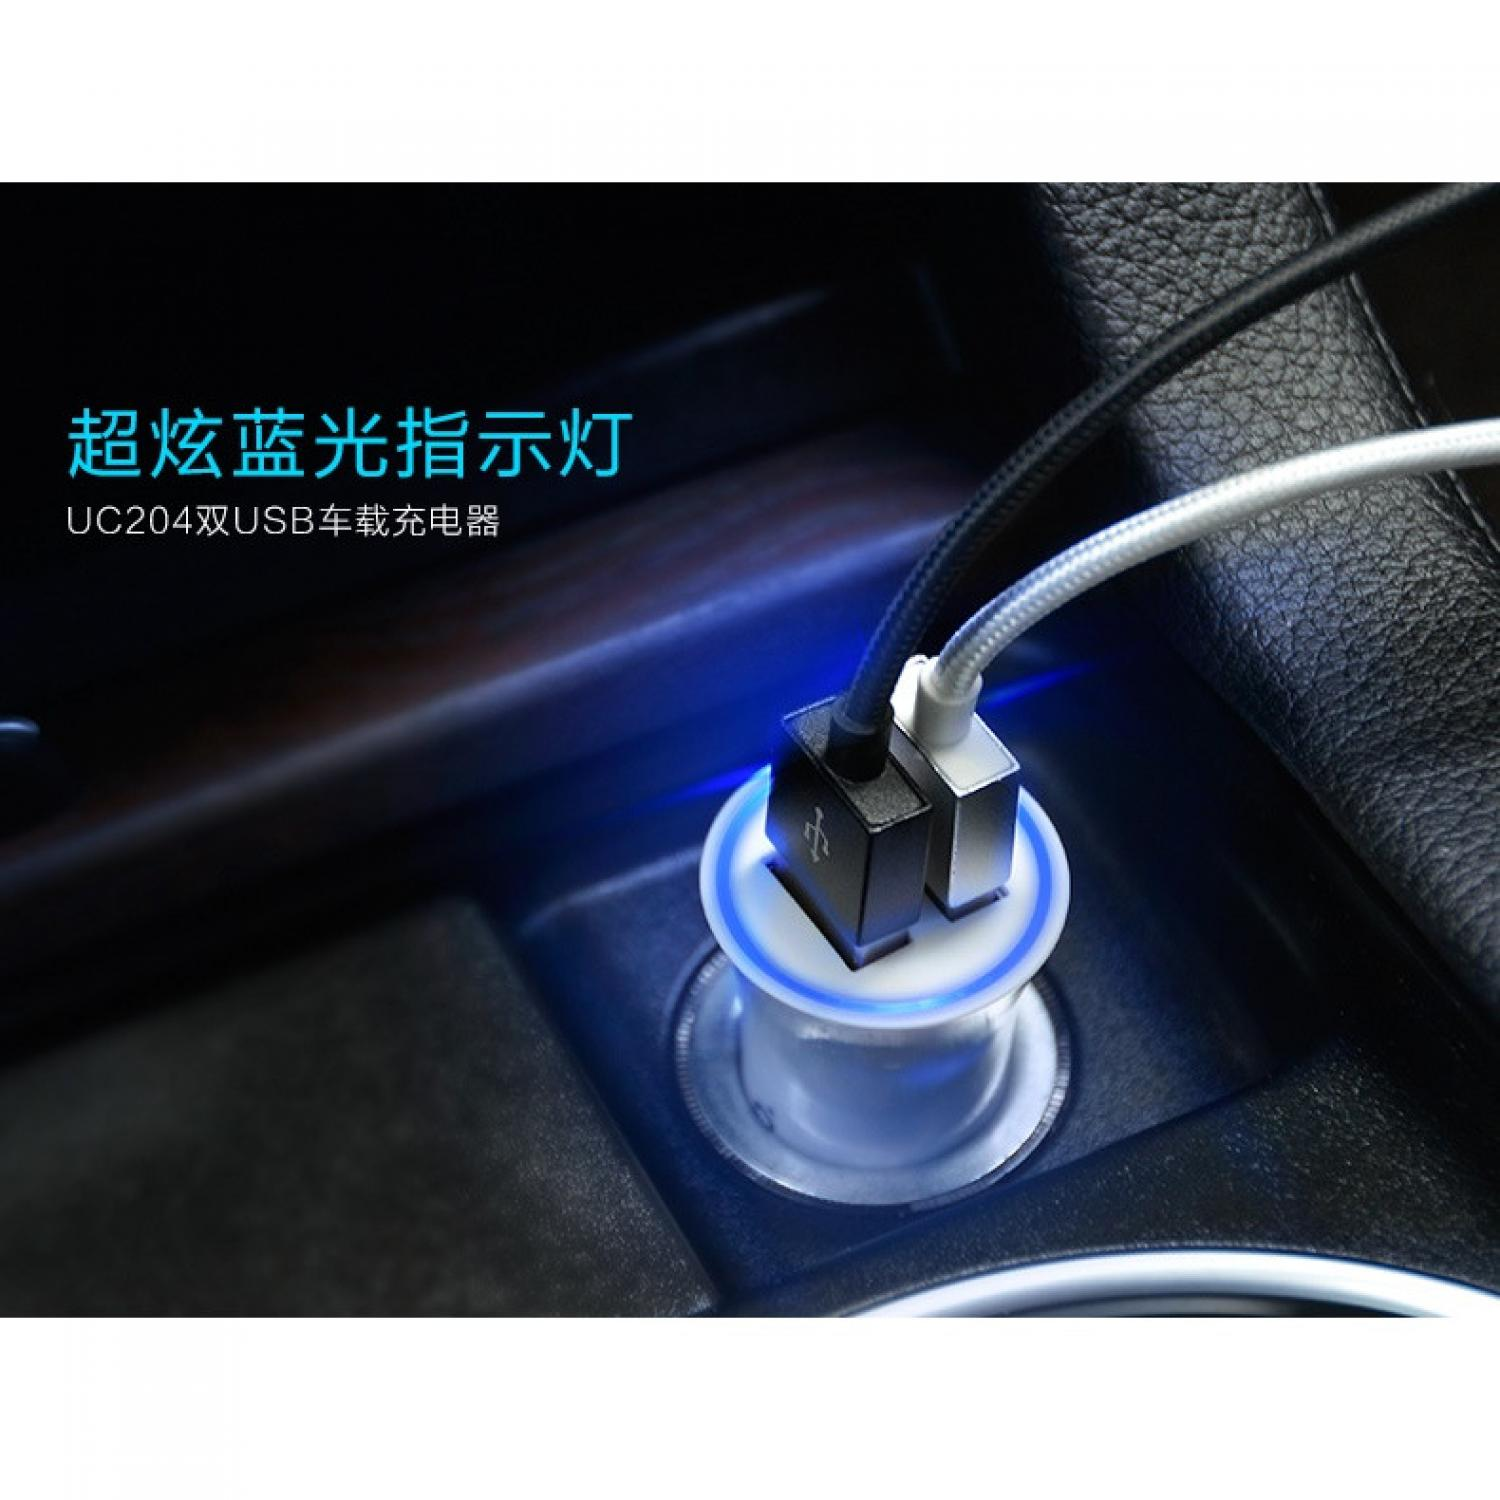 Hoco UC204 Dual USB Car Charger 2.4A for Smartphone